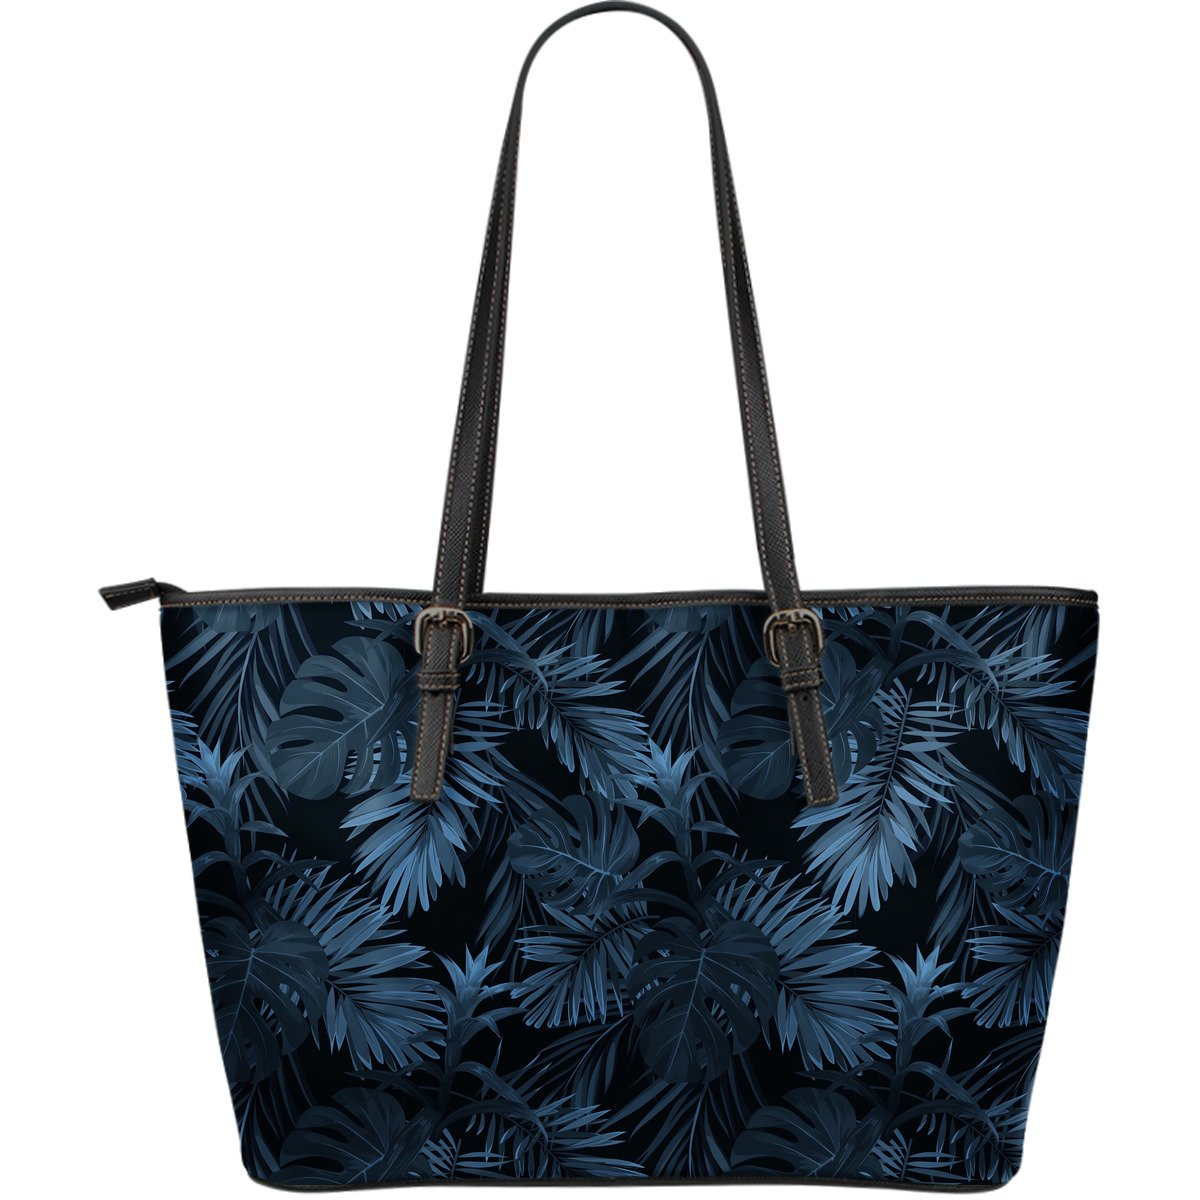 Dark Blue Tropical Leaf Pattern Print Leather Tote Bag GearFrost